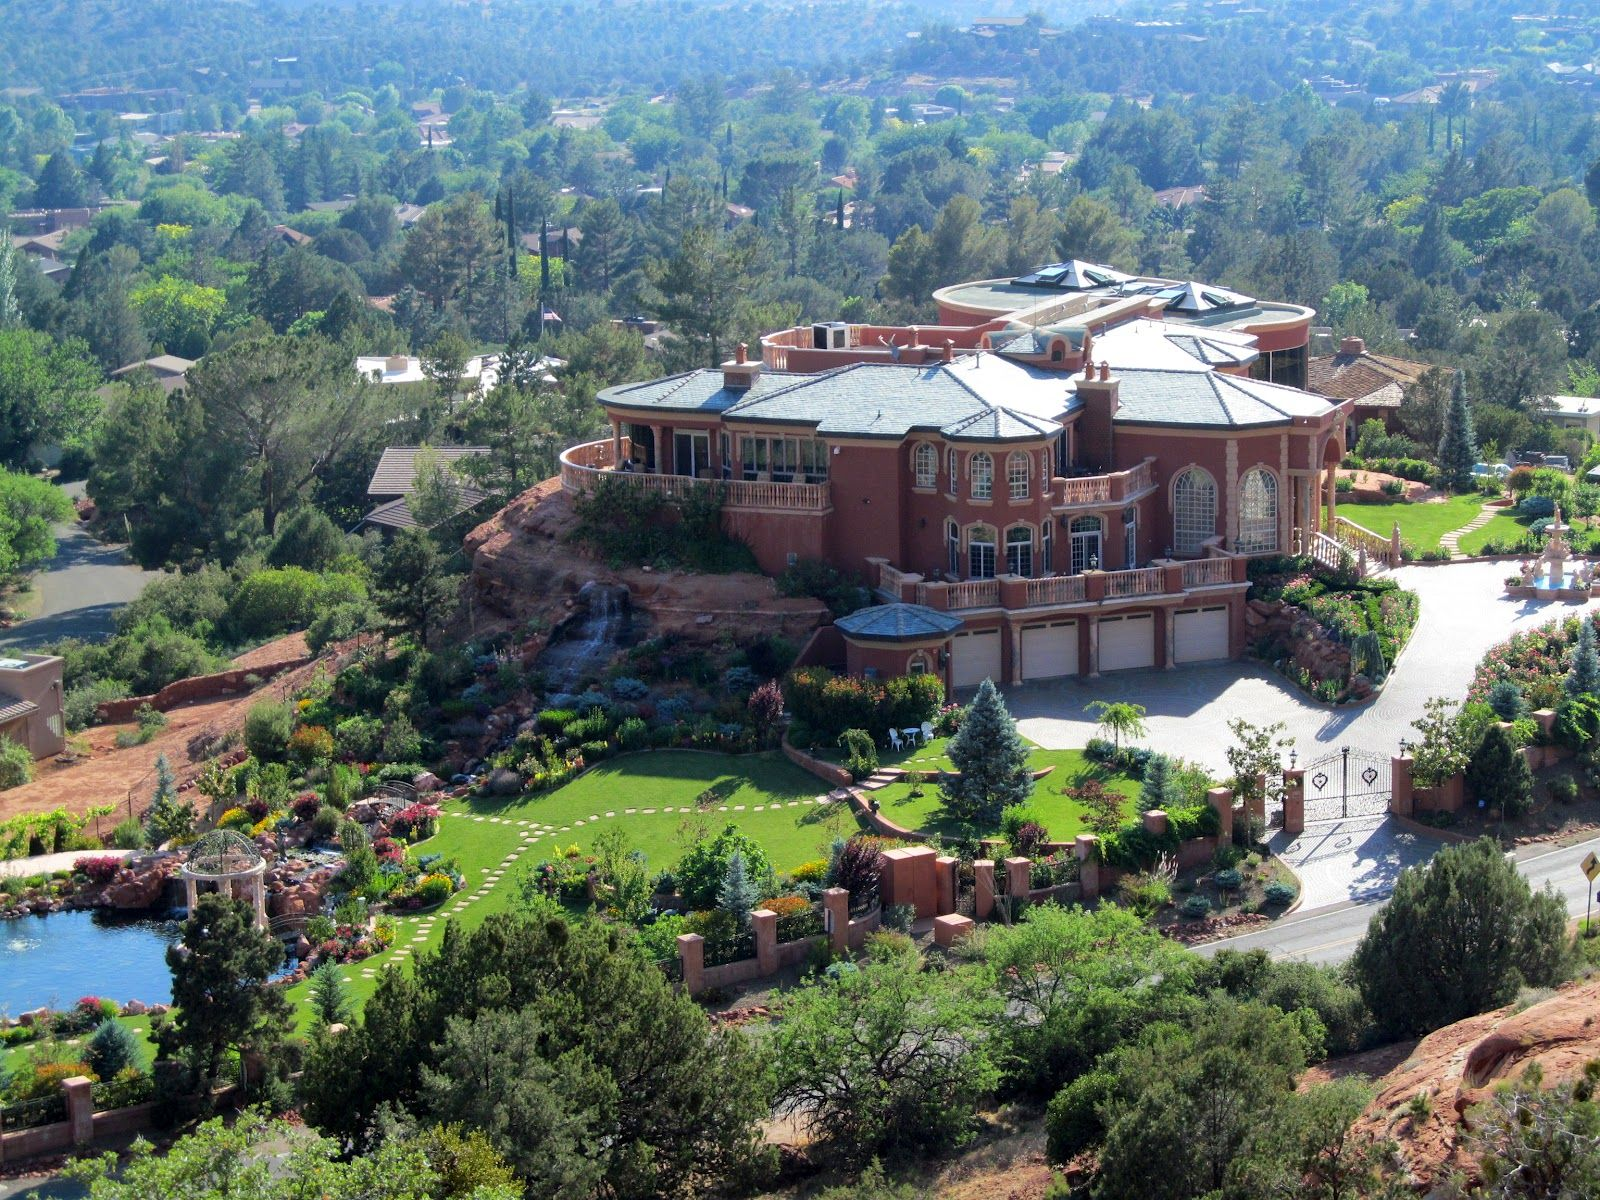 Private home owned by doctor in Sedona Looking down from Chapel